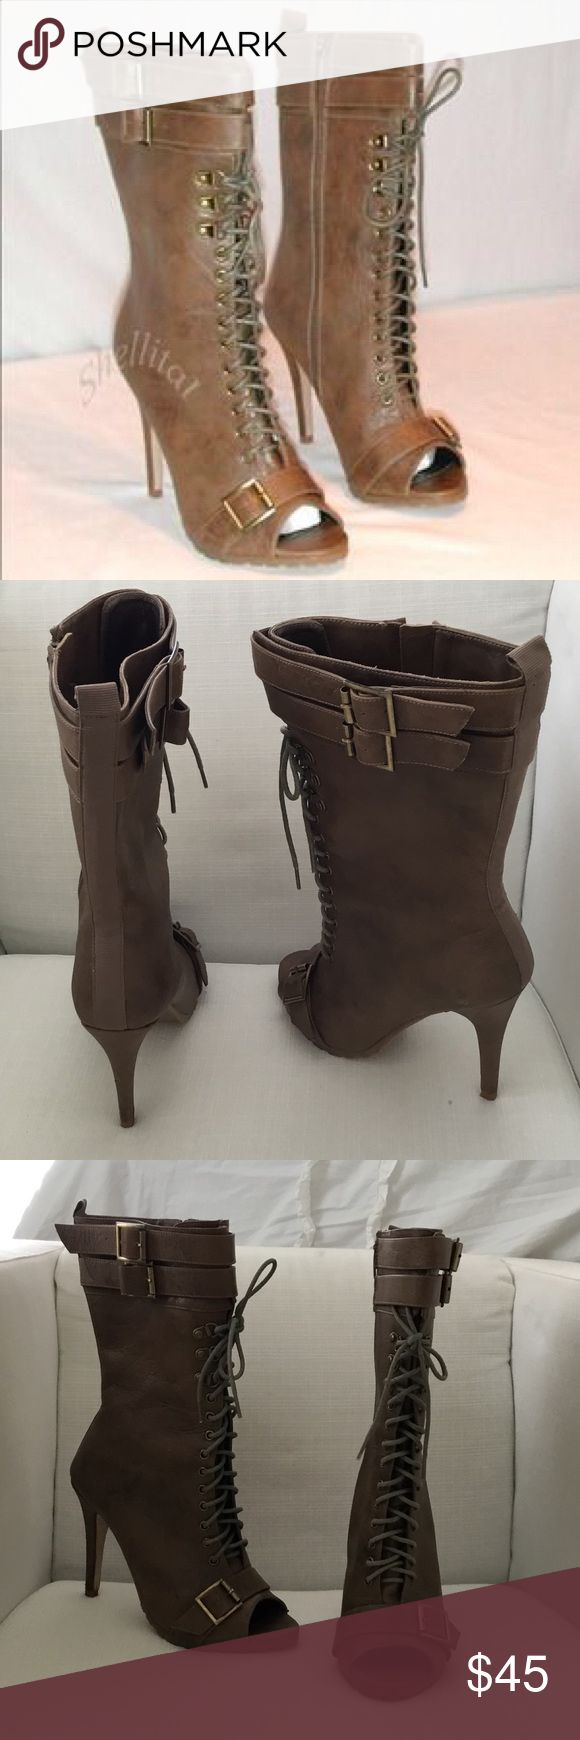 Colin Stuart Peep Toe Lace Up Boots Colin Stuart Taupe Peep Toe Lace Up Boots. Size: 7.5B Show stopper boots! Lightly worn, small imperfection as seen in last photo on the heel. 4inch heel Colin Stuart Shoes Heeled Boots